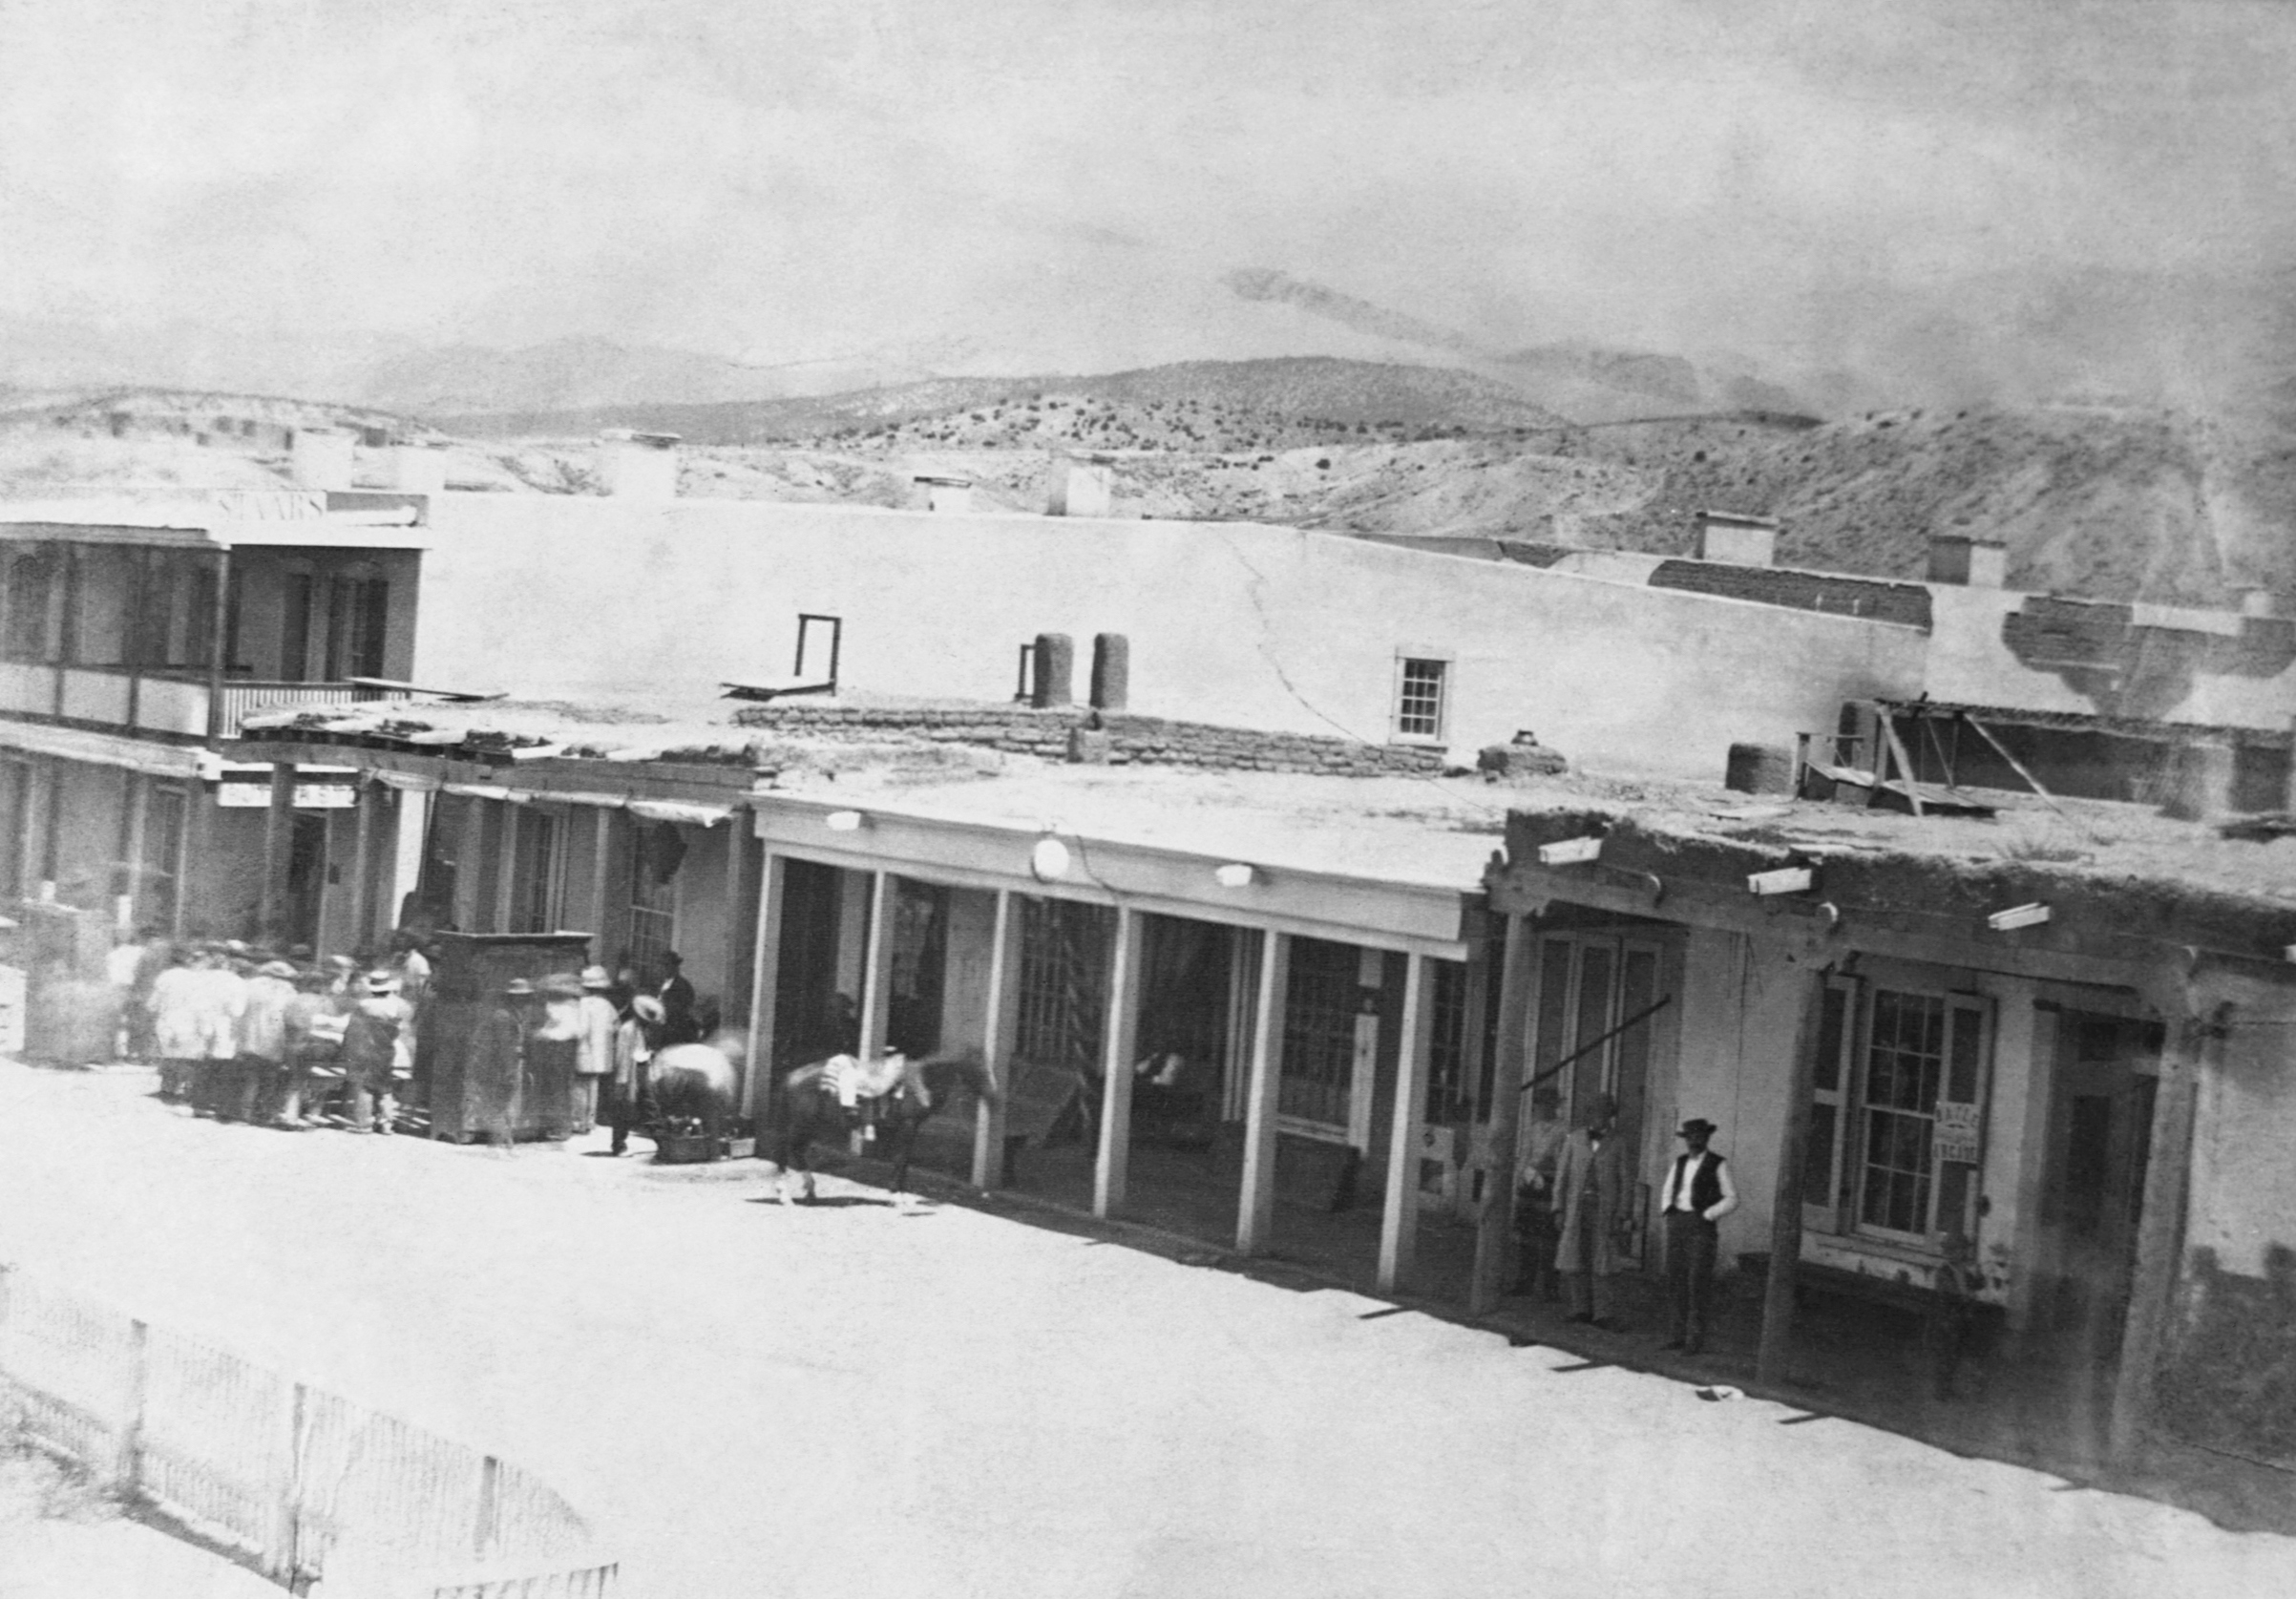 People stand on the sidewalk and in the street at the east side of Plaza in Santa Fe, N.M., 1866.